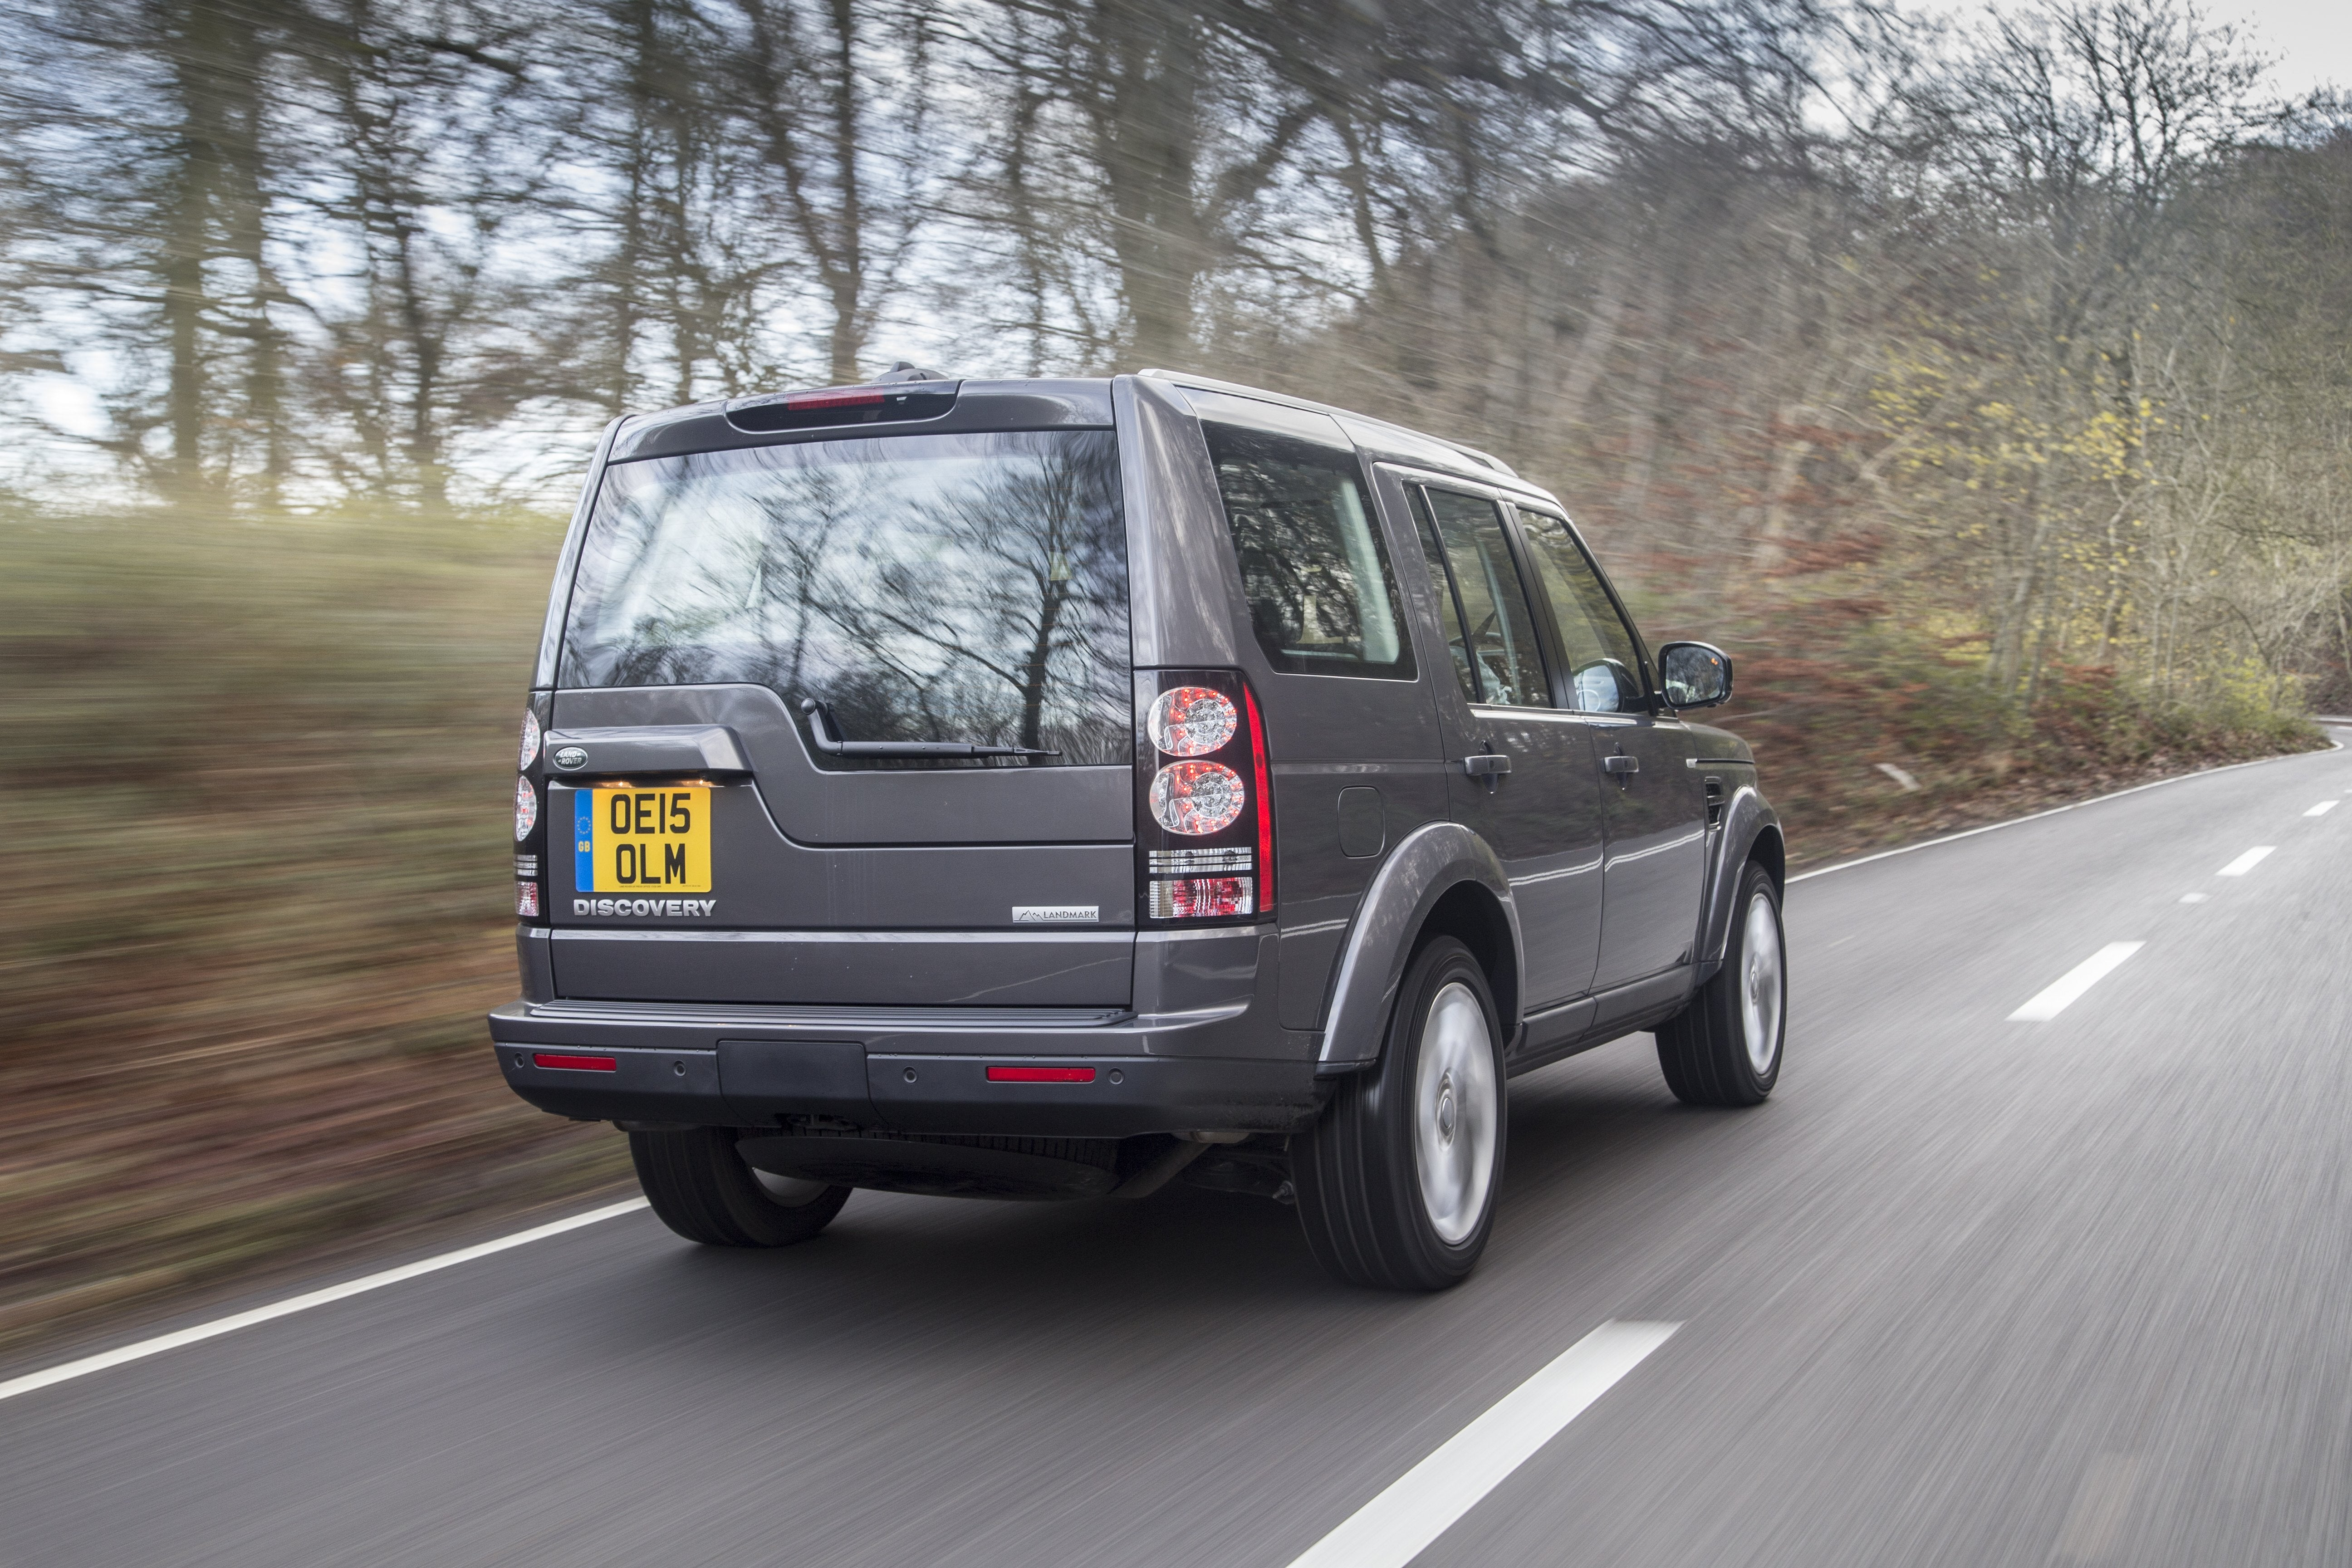 Land Rover Discovery 2009 back exterior